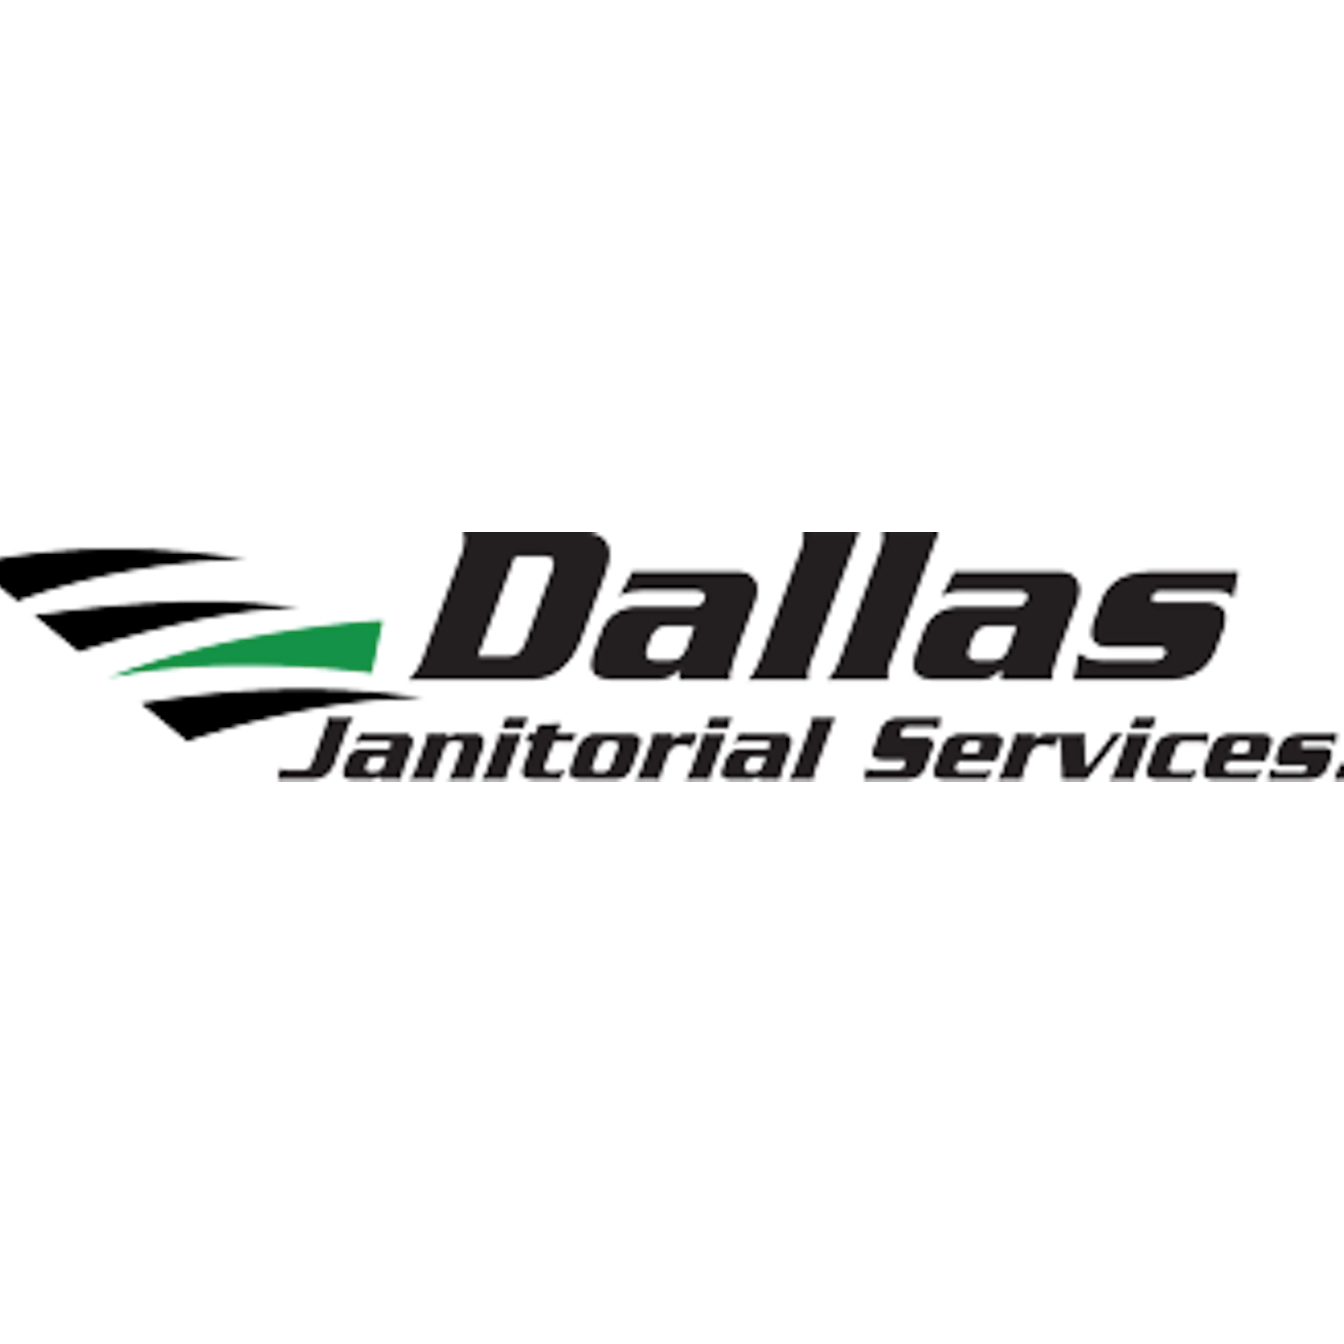 Dallas Janitorial Services Logo Large